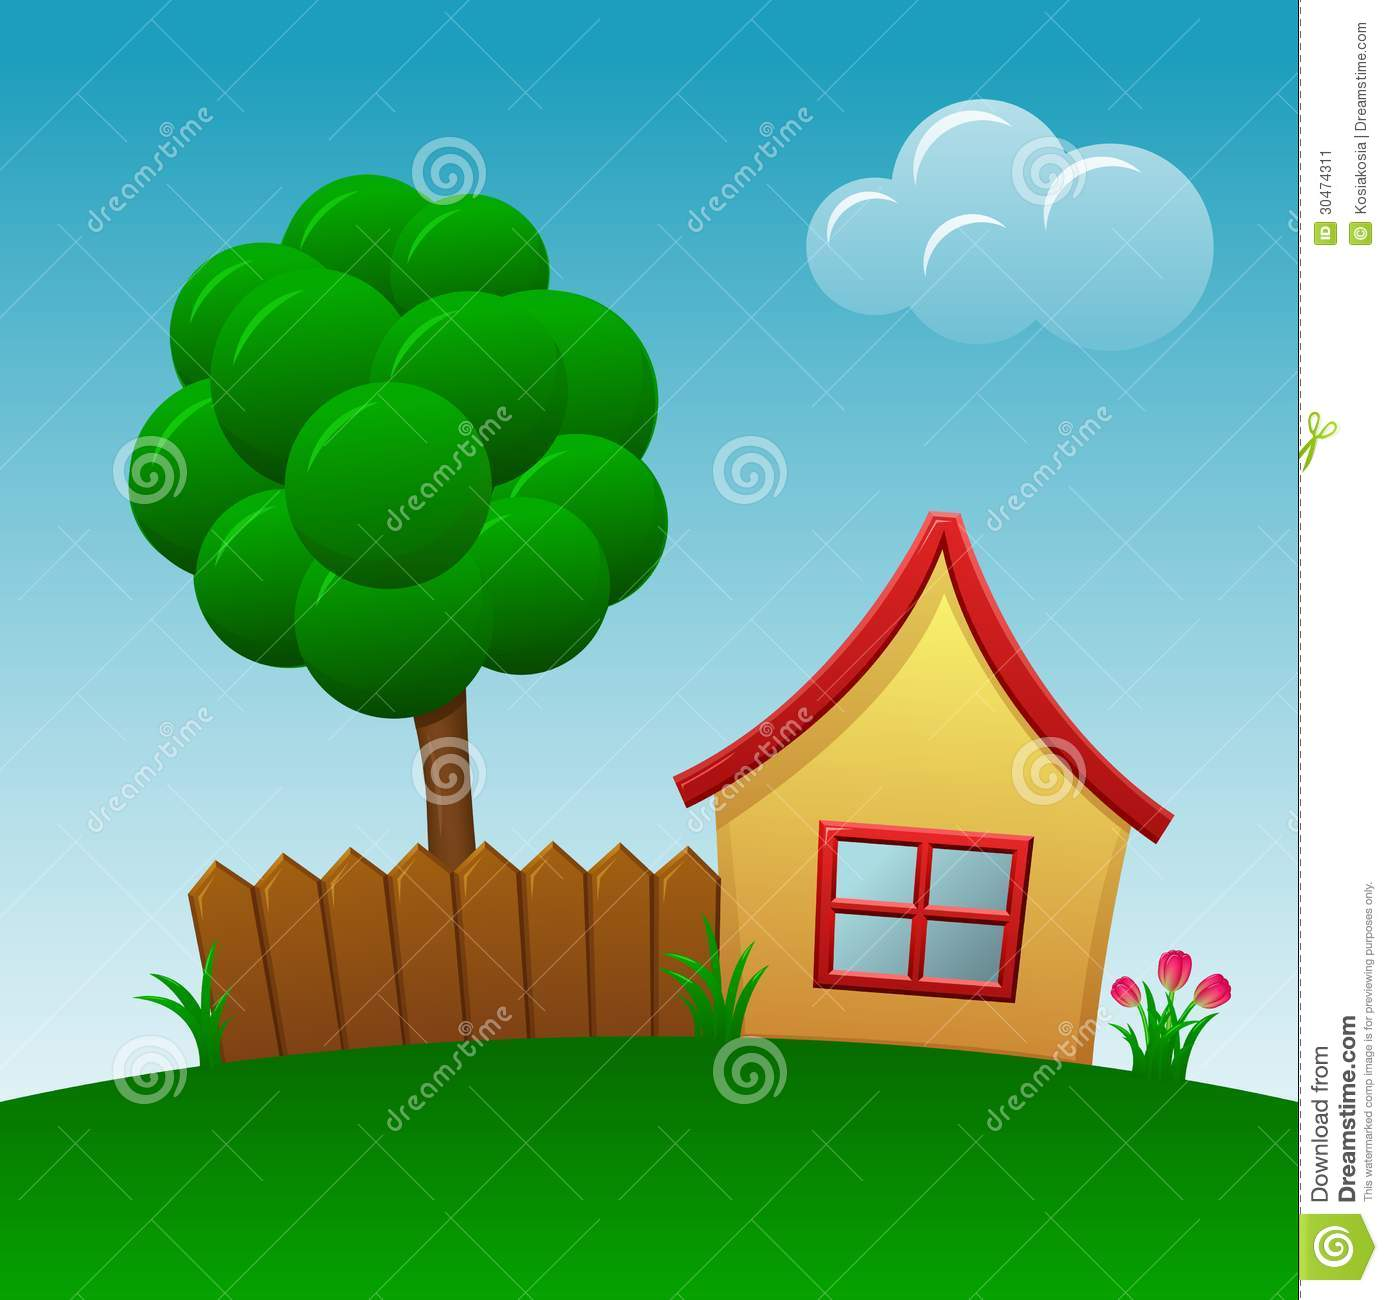 cartoon house stock illustration image of flower house